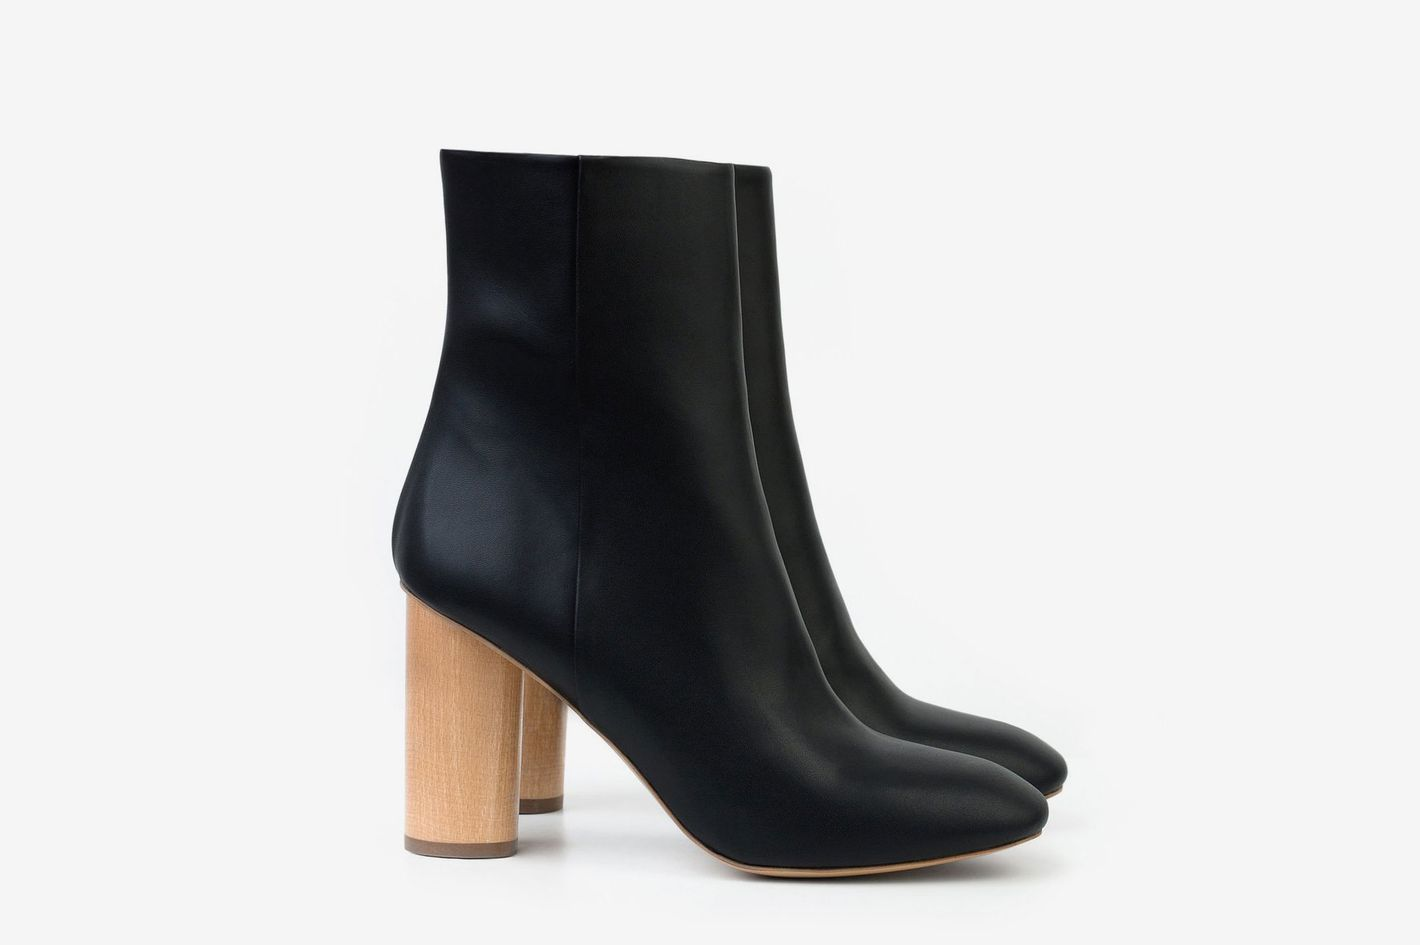 Sydney Brown High Ankle Boot